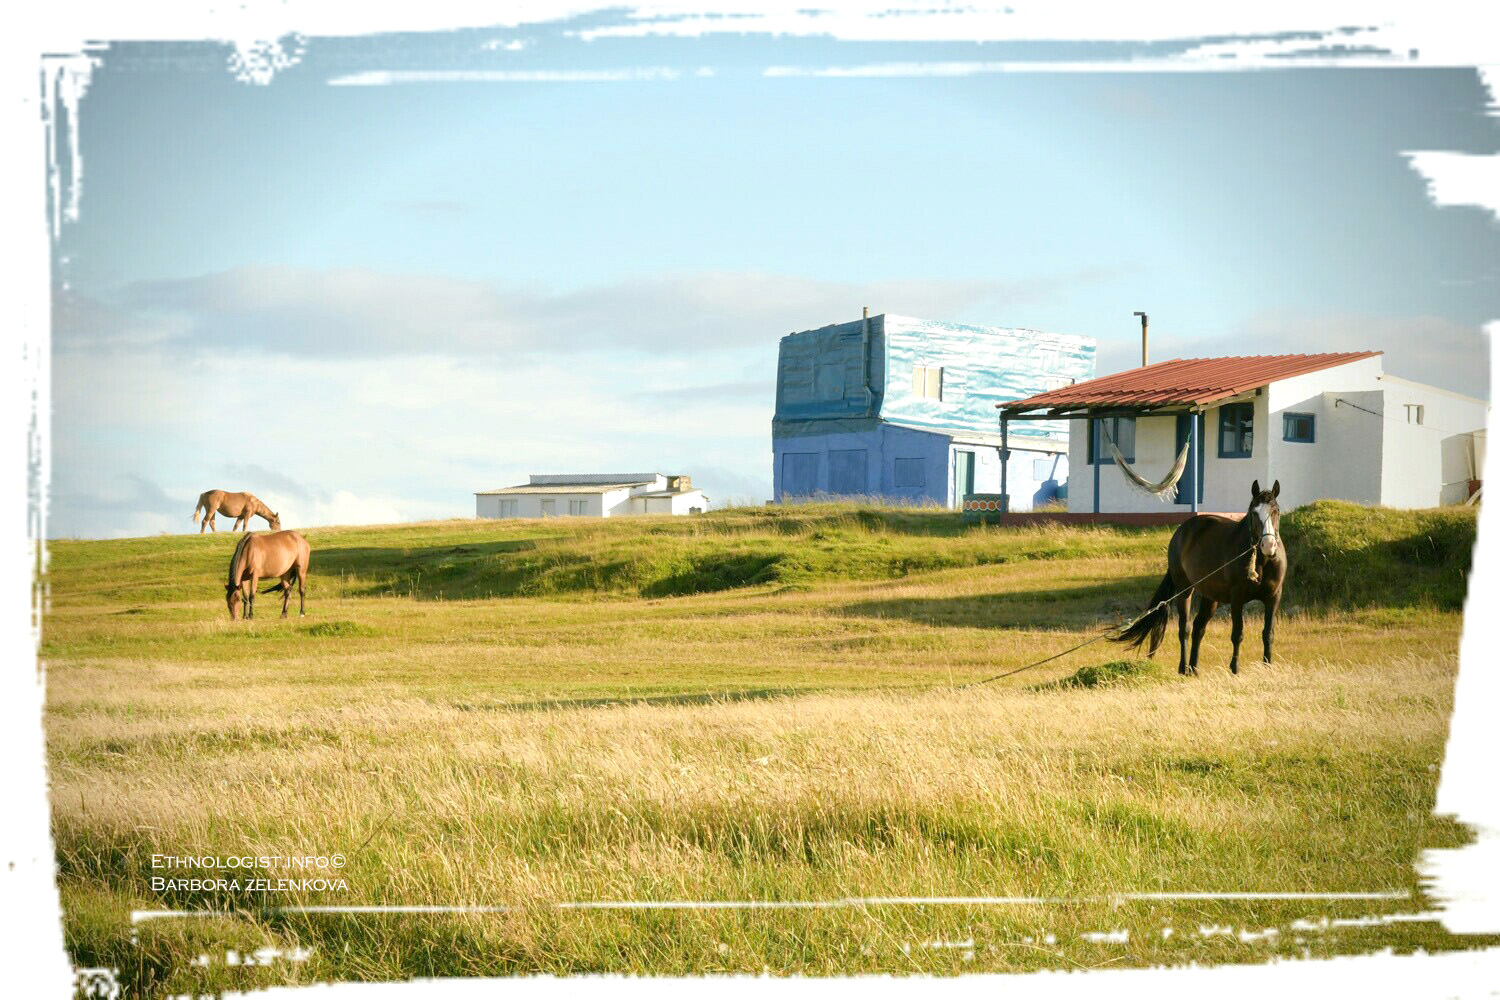 Grazing horses in sunny pasture in Cabo Polonio. Photo: Barbora Zelenková, December, 2016.